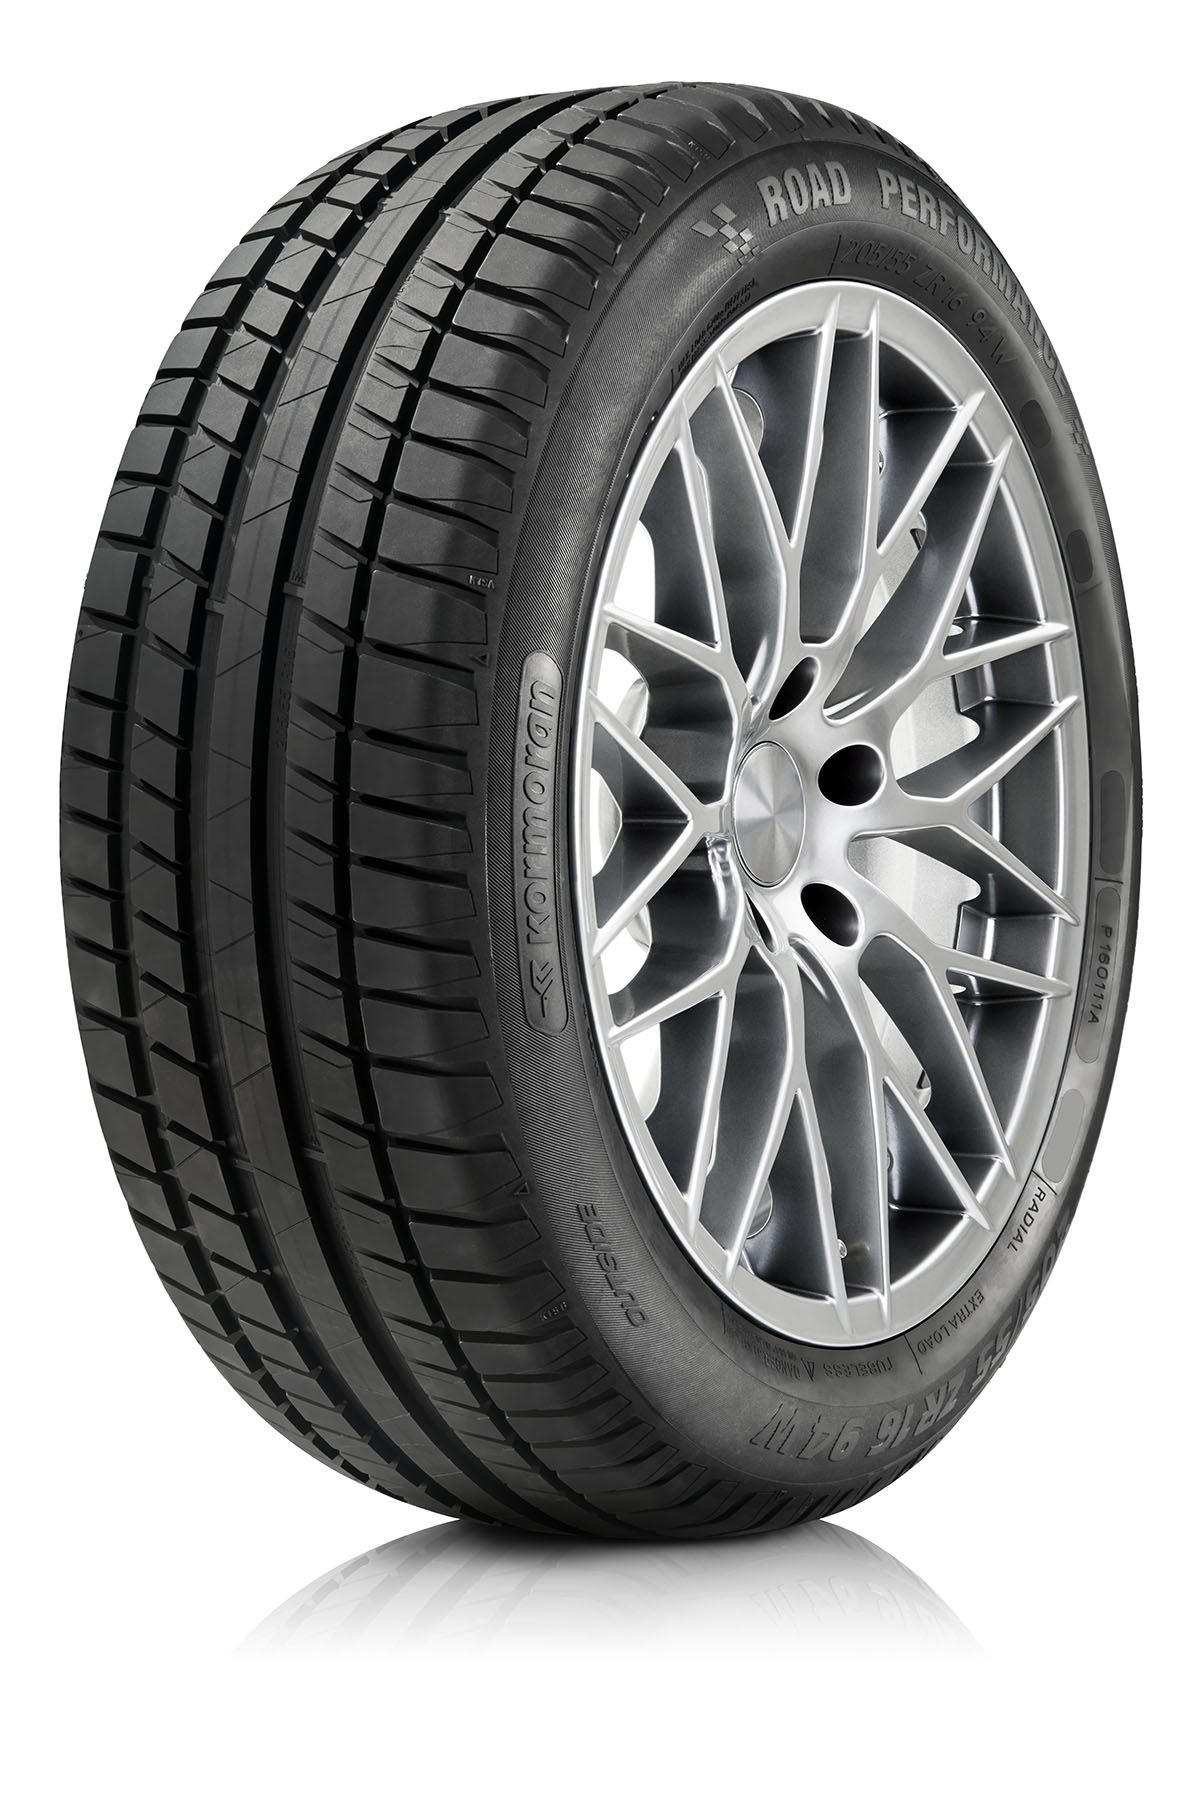 Kormoran ROAD PERFORMANCE  99 V XL  ( 240 km/h)  215/60R16